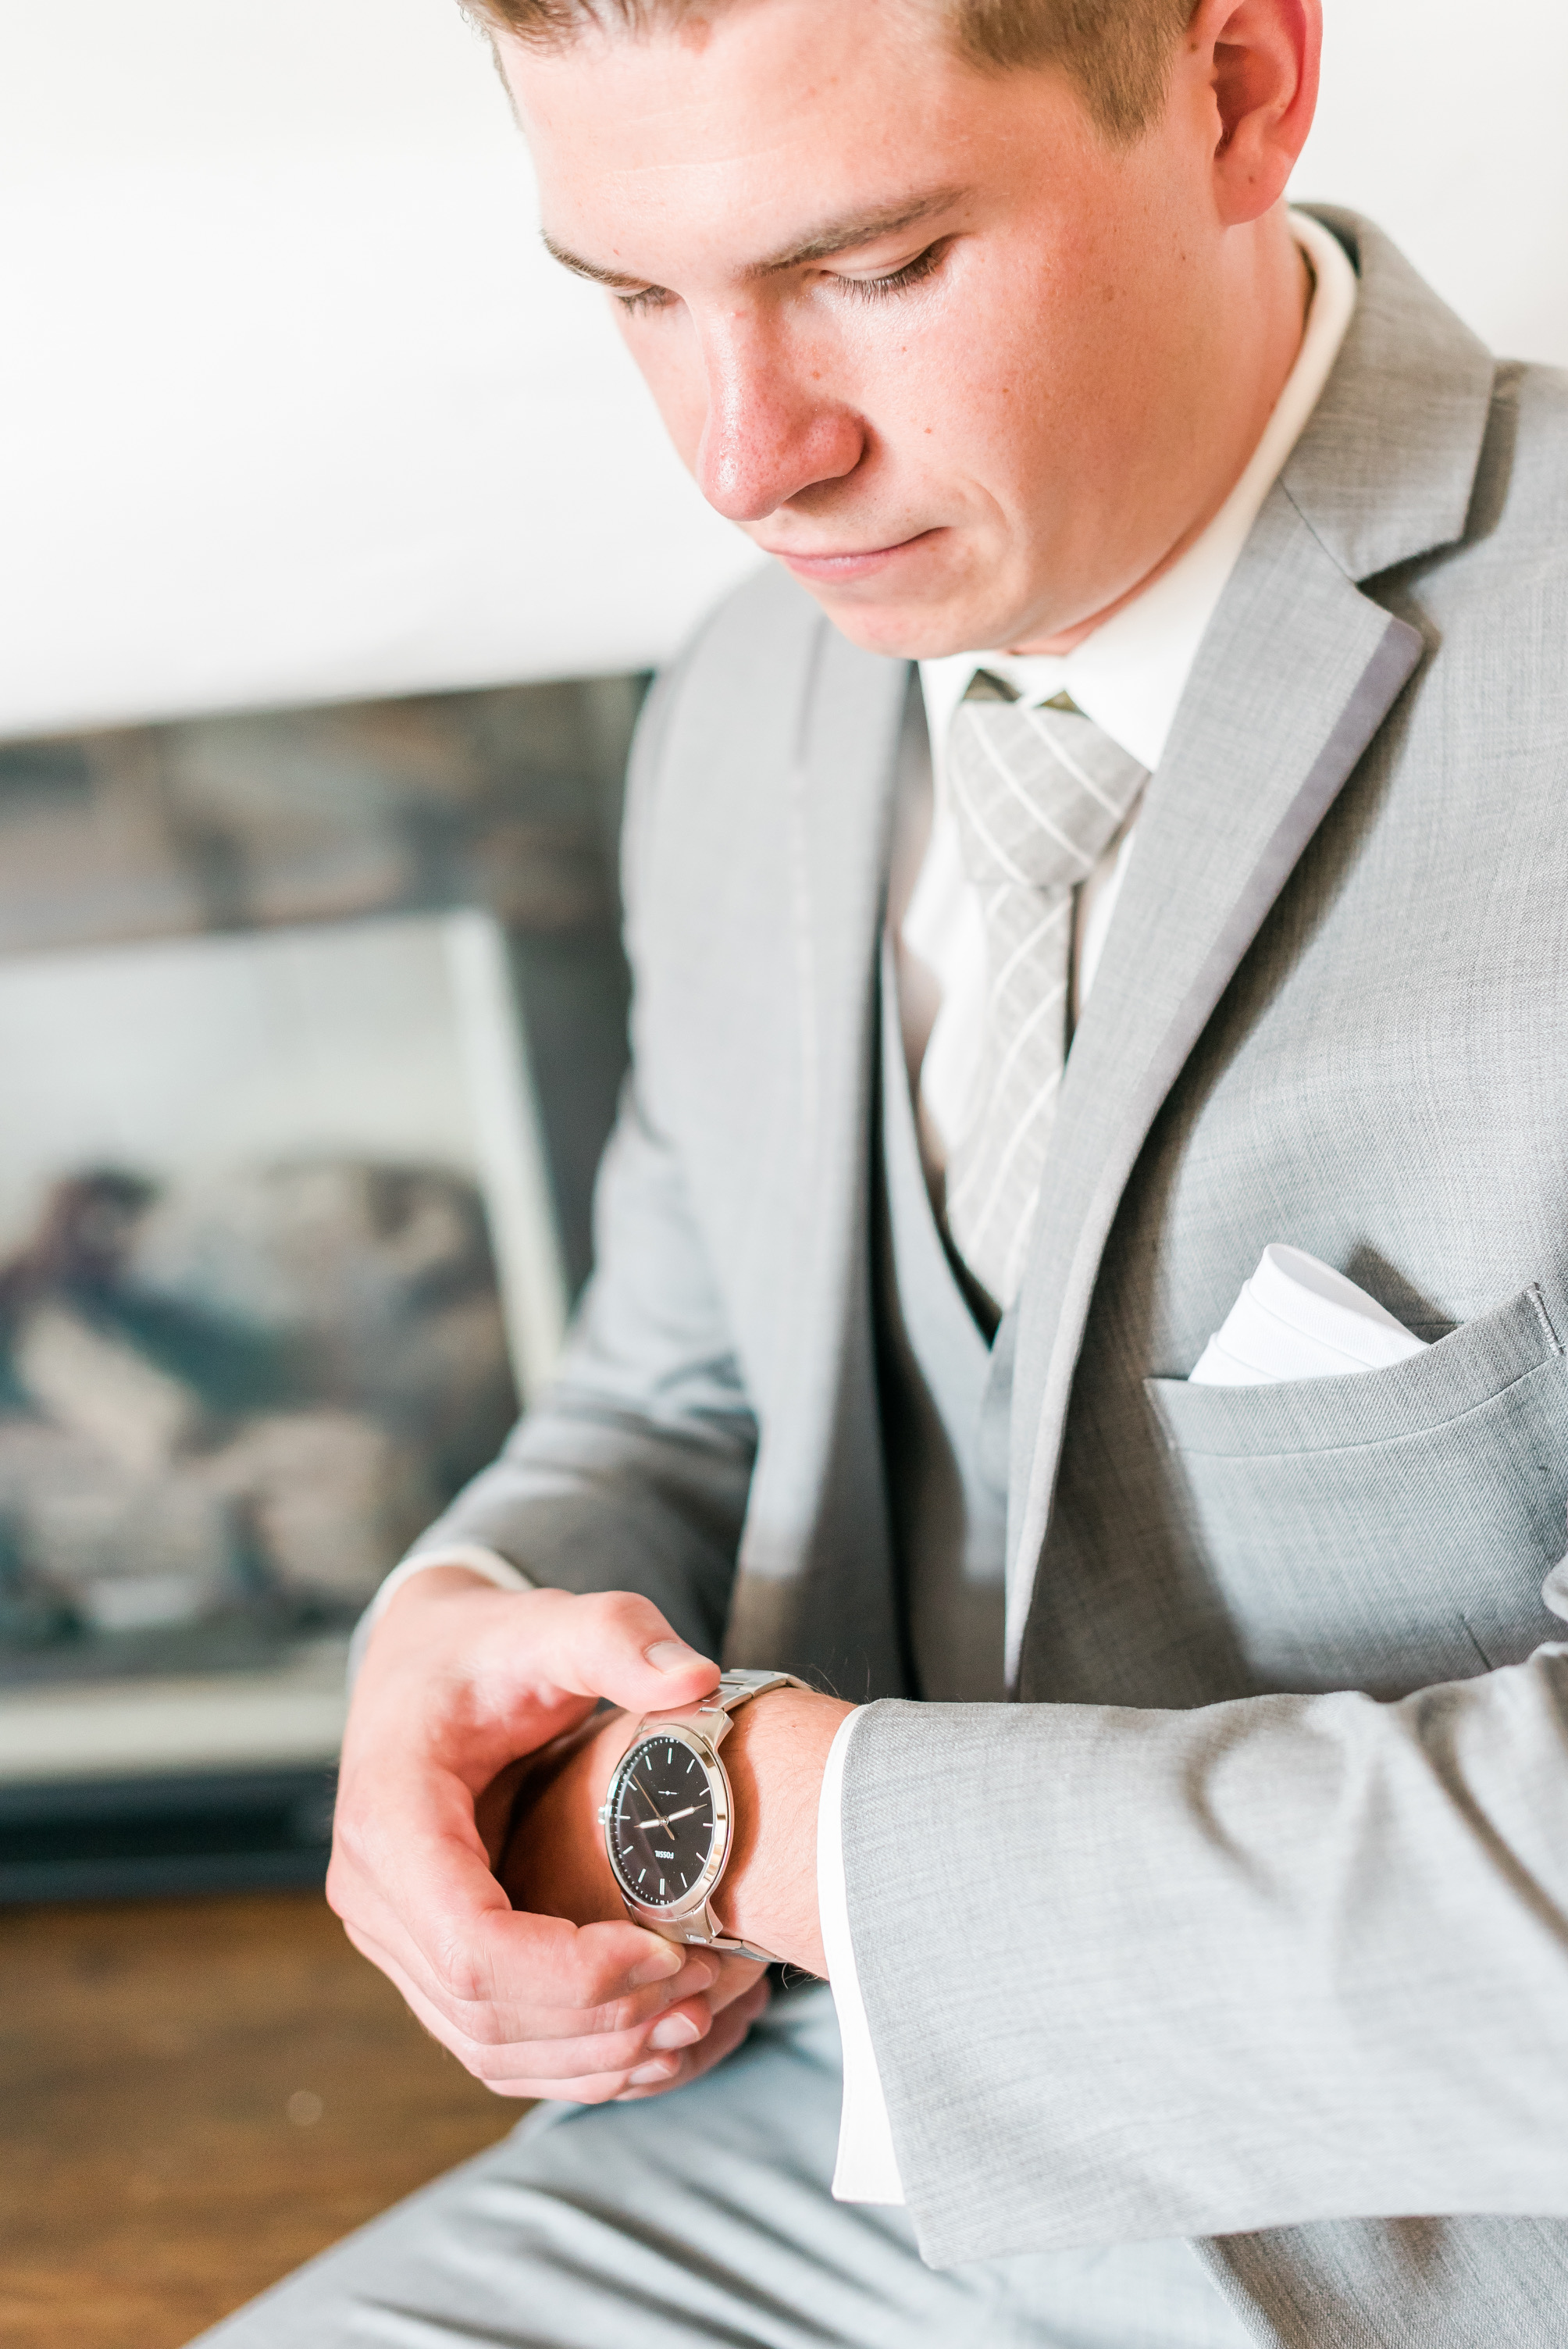 groom getting ready, wedding details, timeless wedding photography, photos to have your wedding photographer take